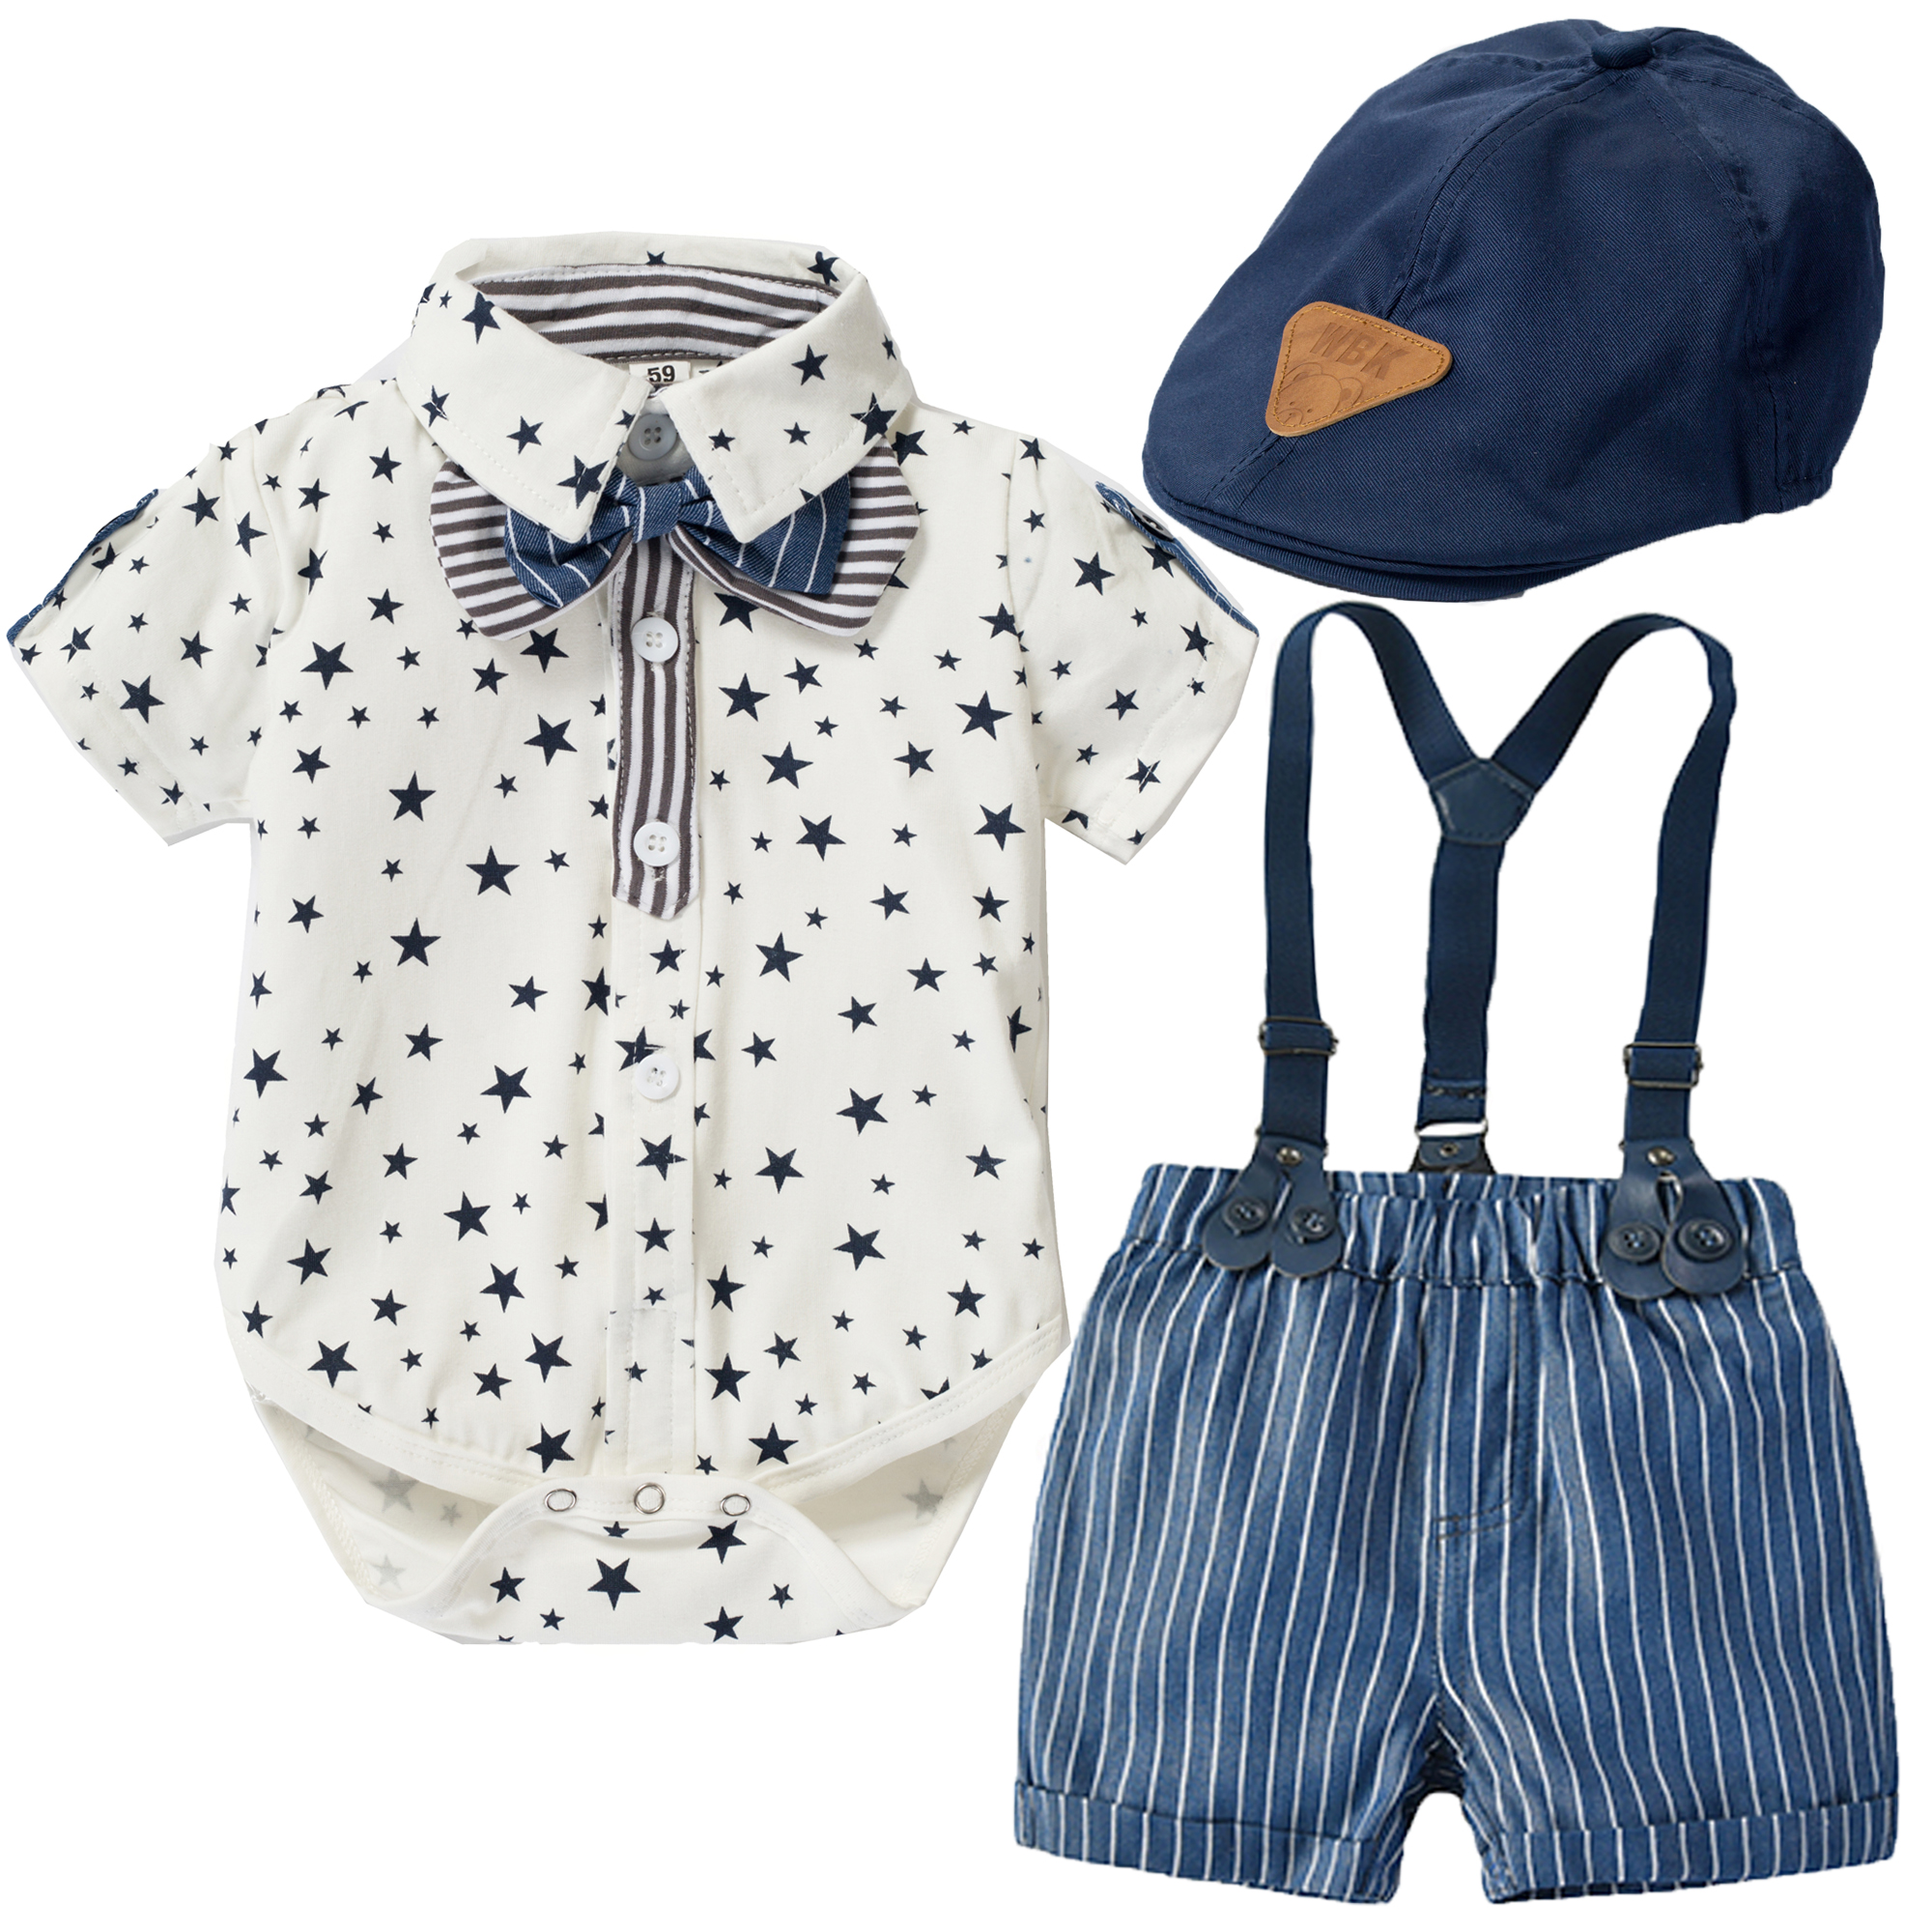 Boys Romper Clothes Suit Formal Newborn Baby Toddler Boys Clothes Stars Summer Gentleman Hat + Jumpsuit + Suspenders Shorts